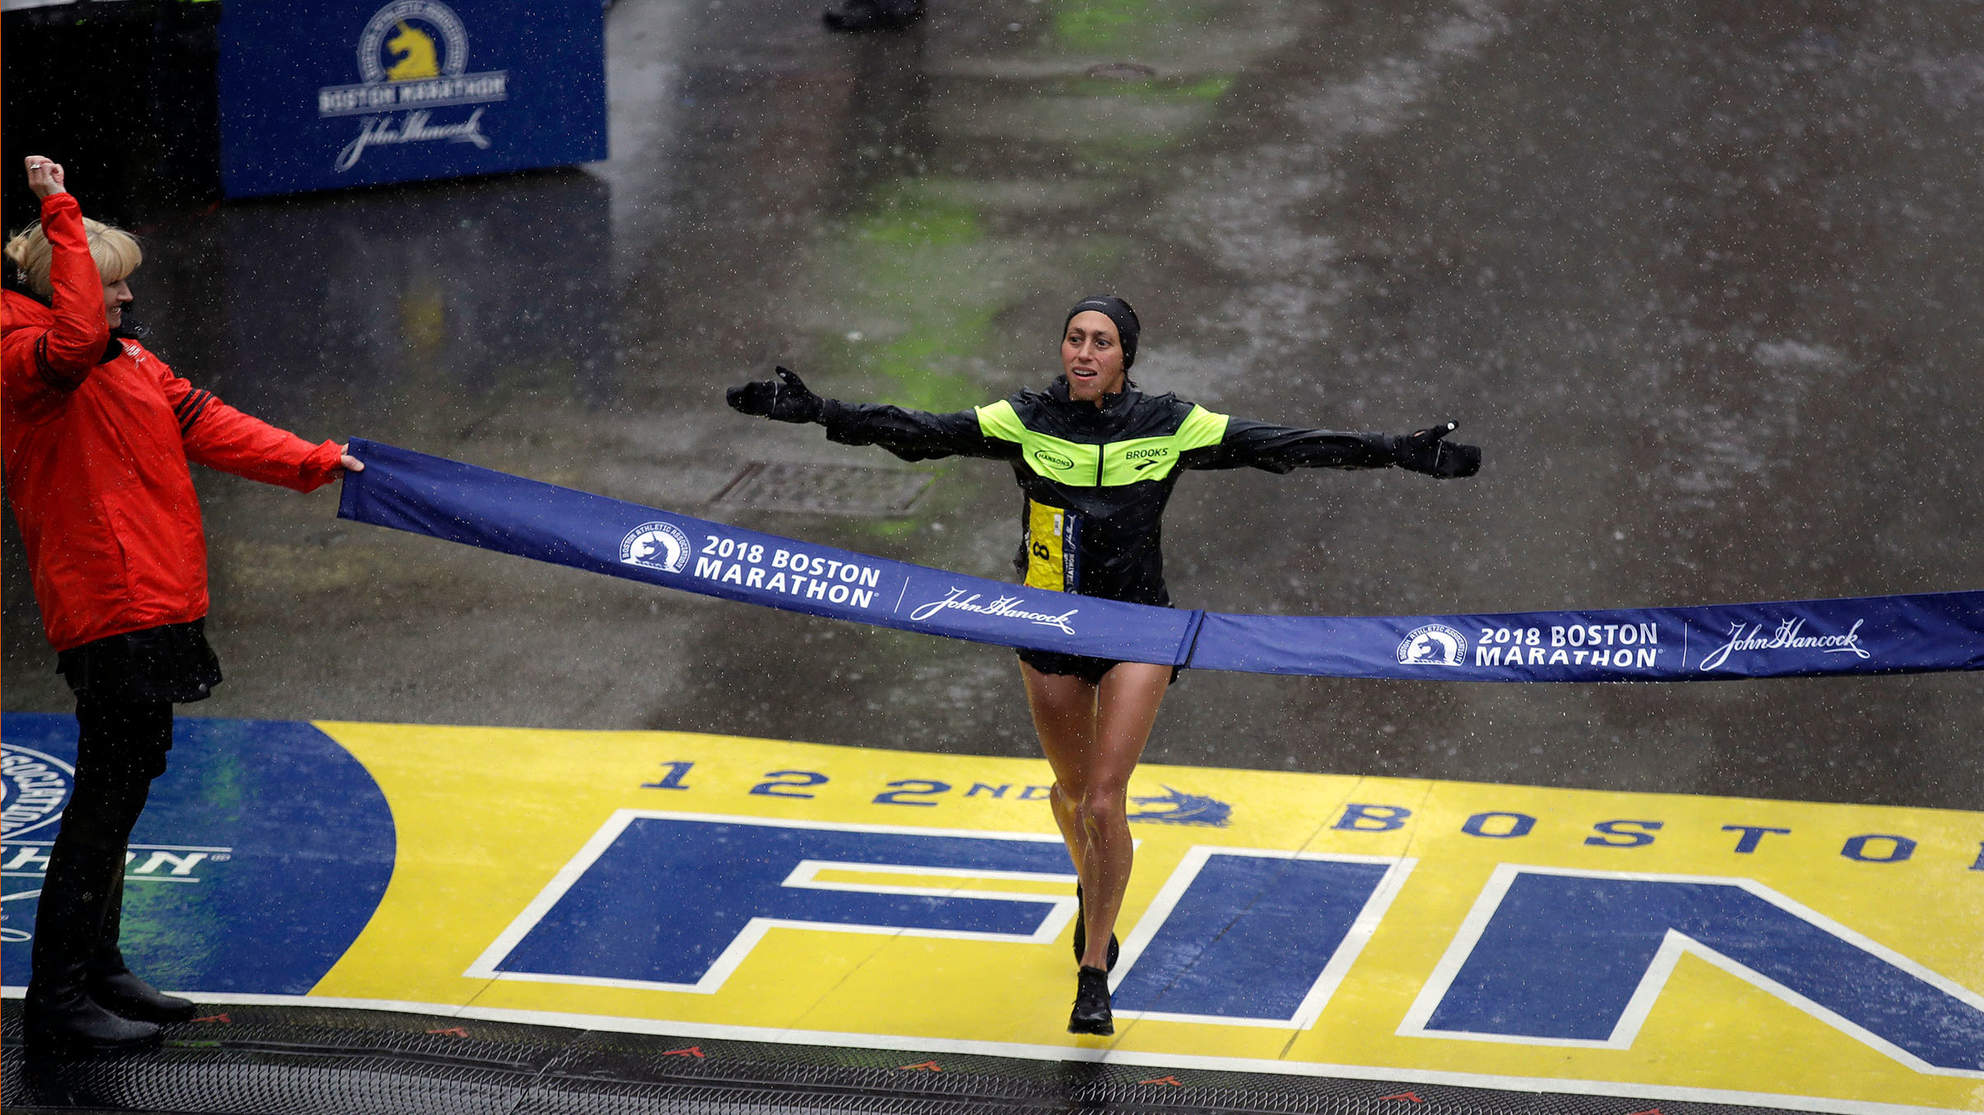 Desiree Linden Just Became the First American Woman to Win the Boston Marathon in Three Decades